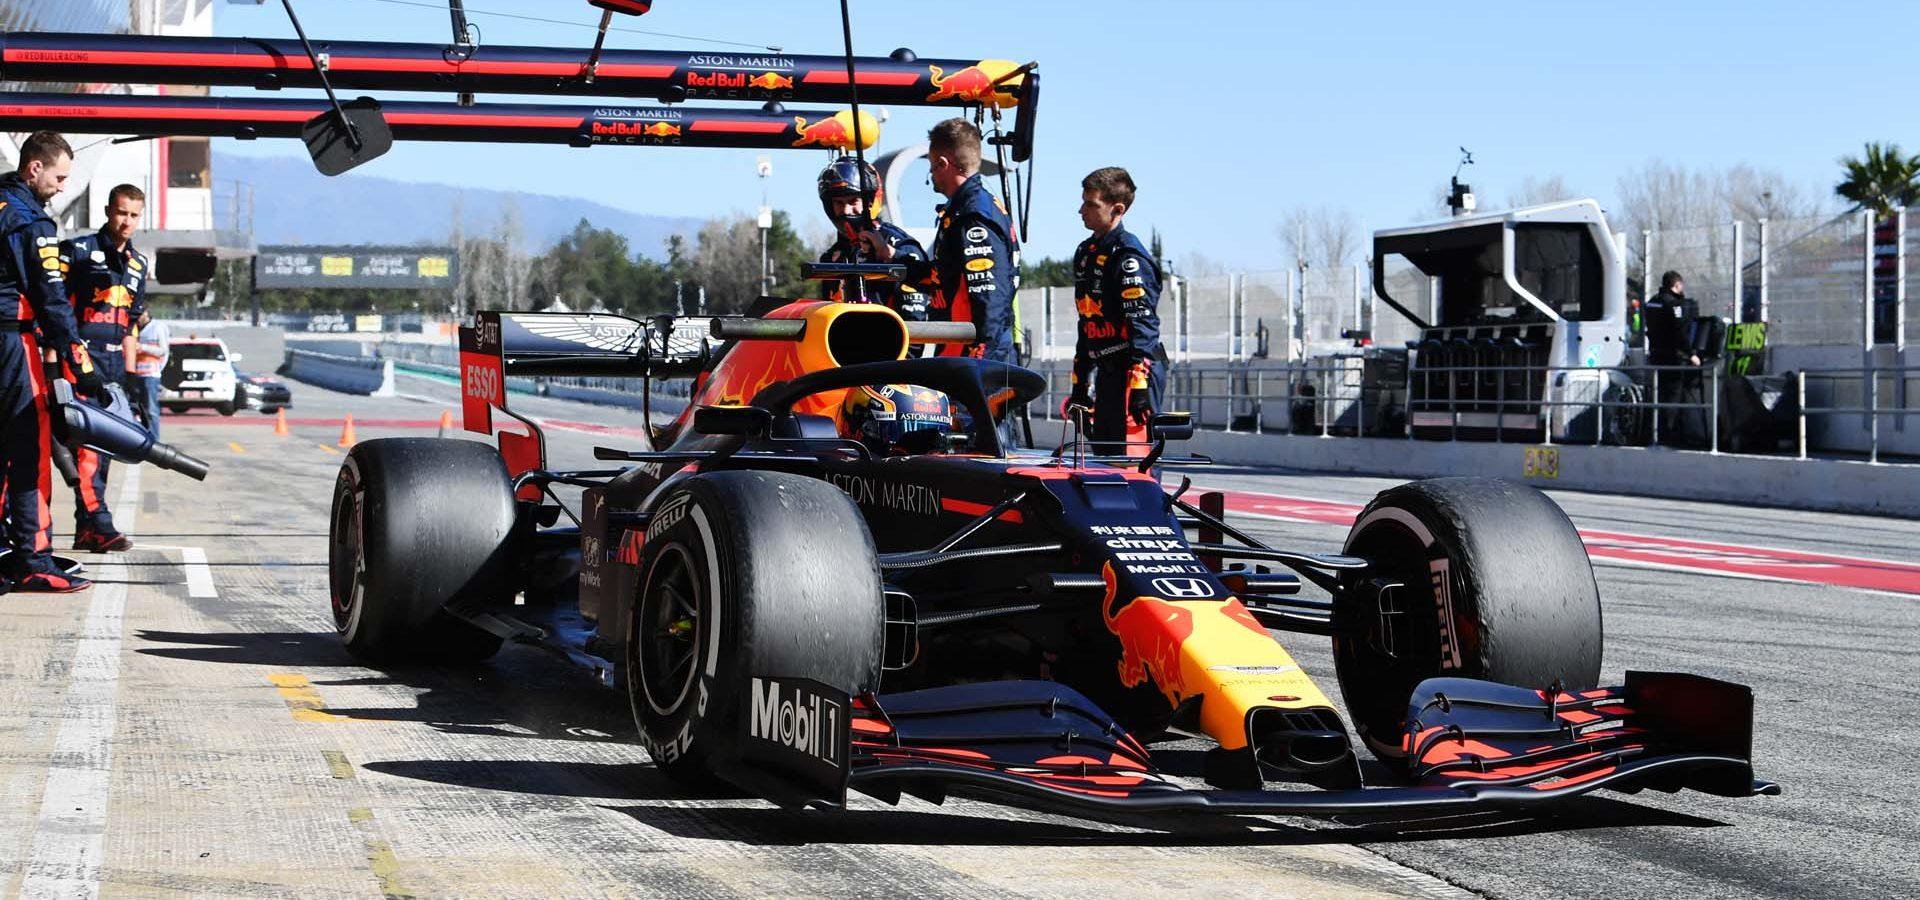 CIRCUIT DE BARCELONA-CATALUNYA, SPAIN - FEBRUARY 26: Max Verstappen, Red Bull Racing during the Barcelona February testing II at Circuit de Barcelona-Catalunya on February 26, 2020 in Circuit de Barcelona-Catalunya, Spain. (Photo by Mark Sutton / LAT Images)